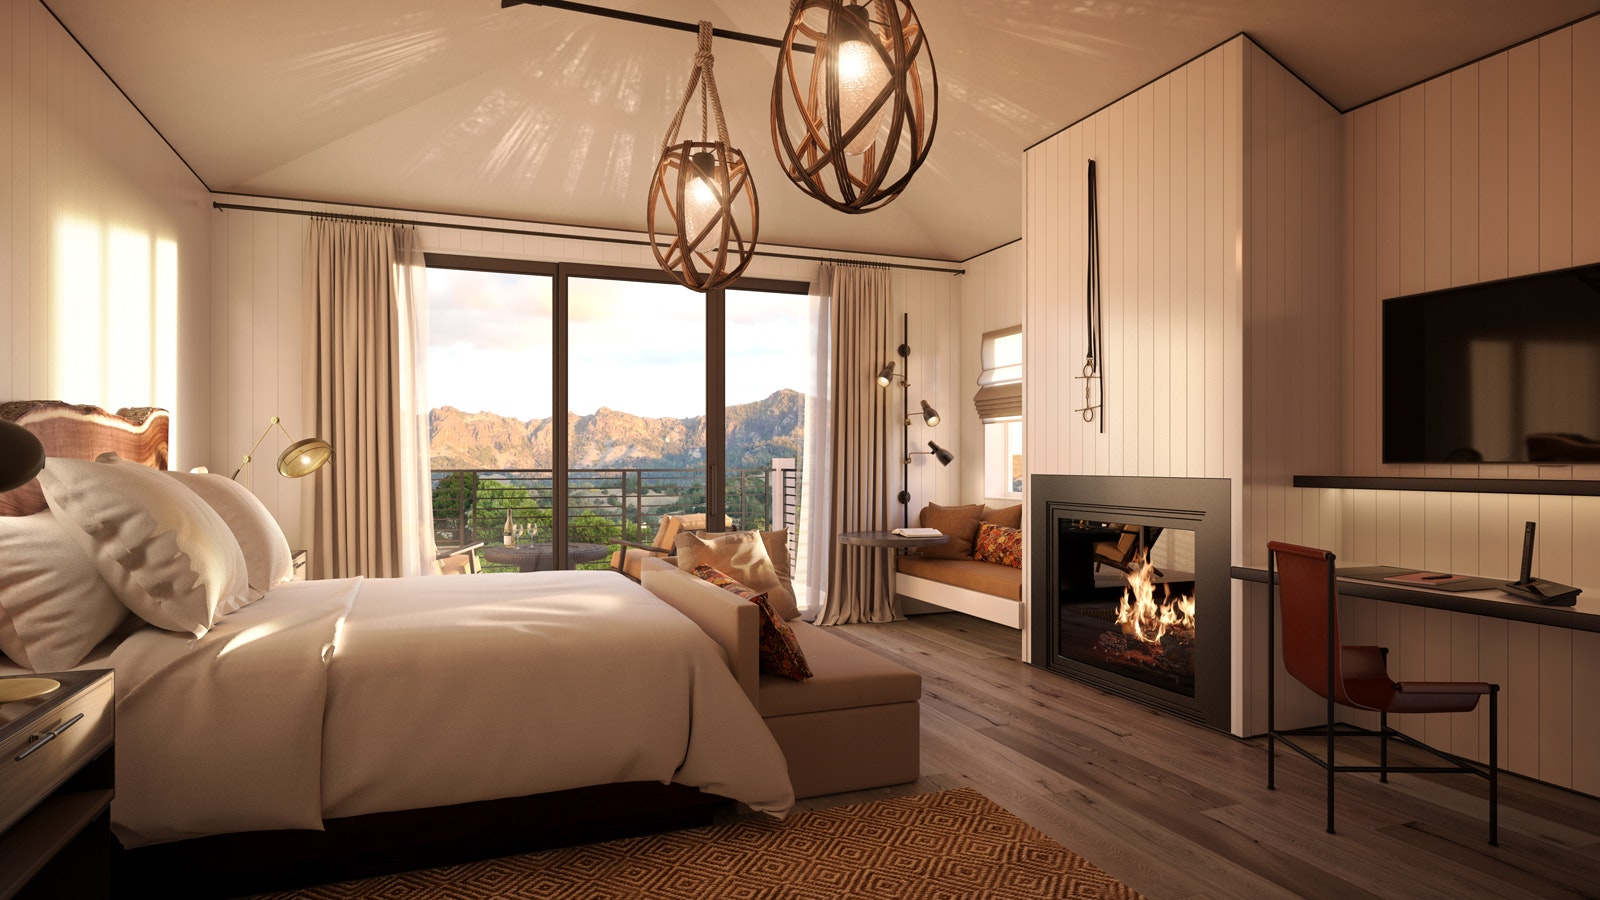 A room interior at the new Four Seasons outpost in Napa Valley